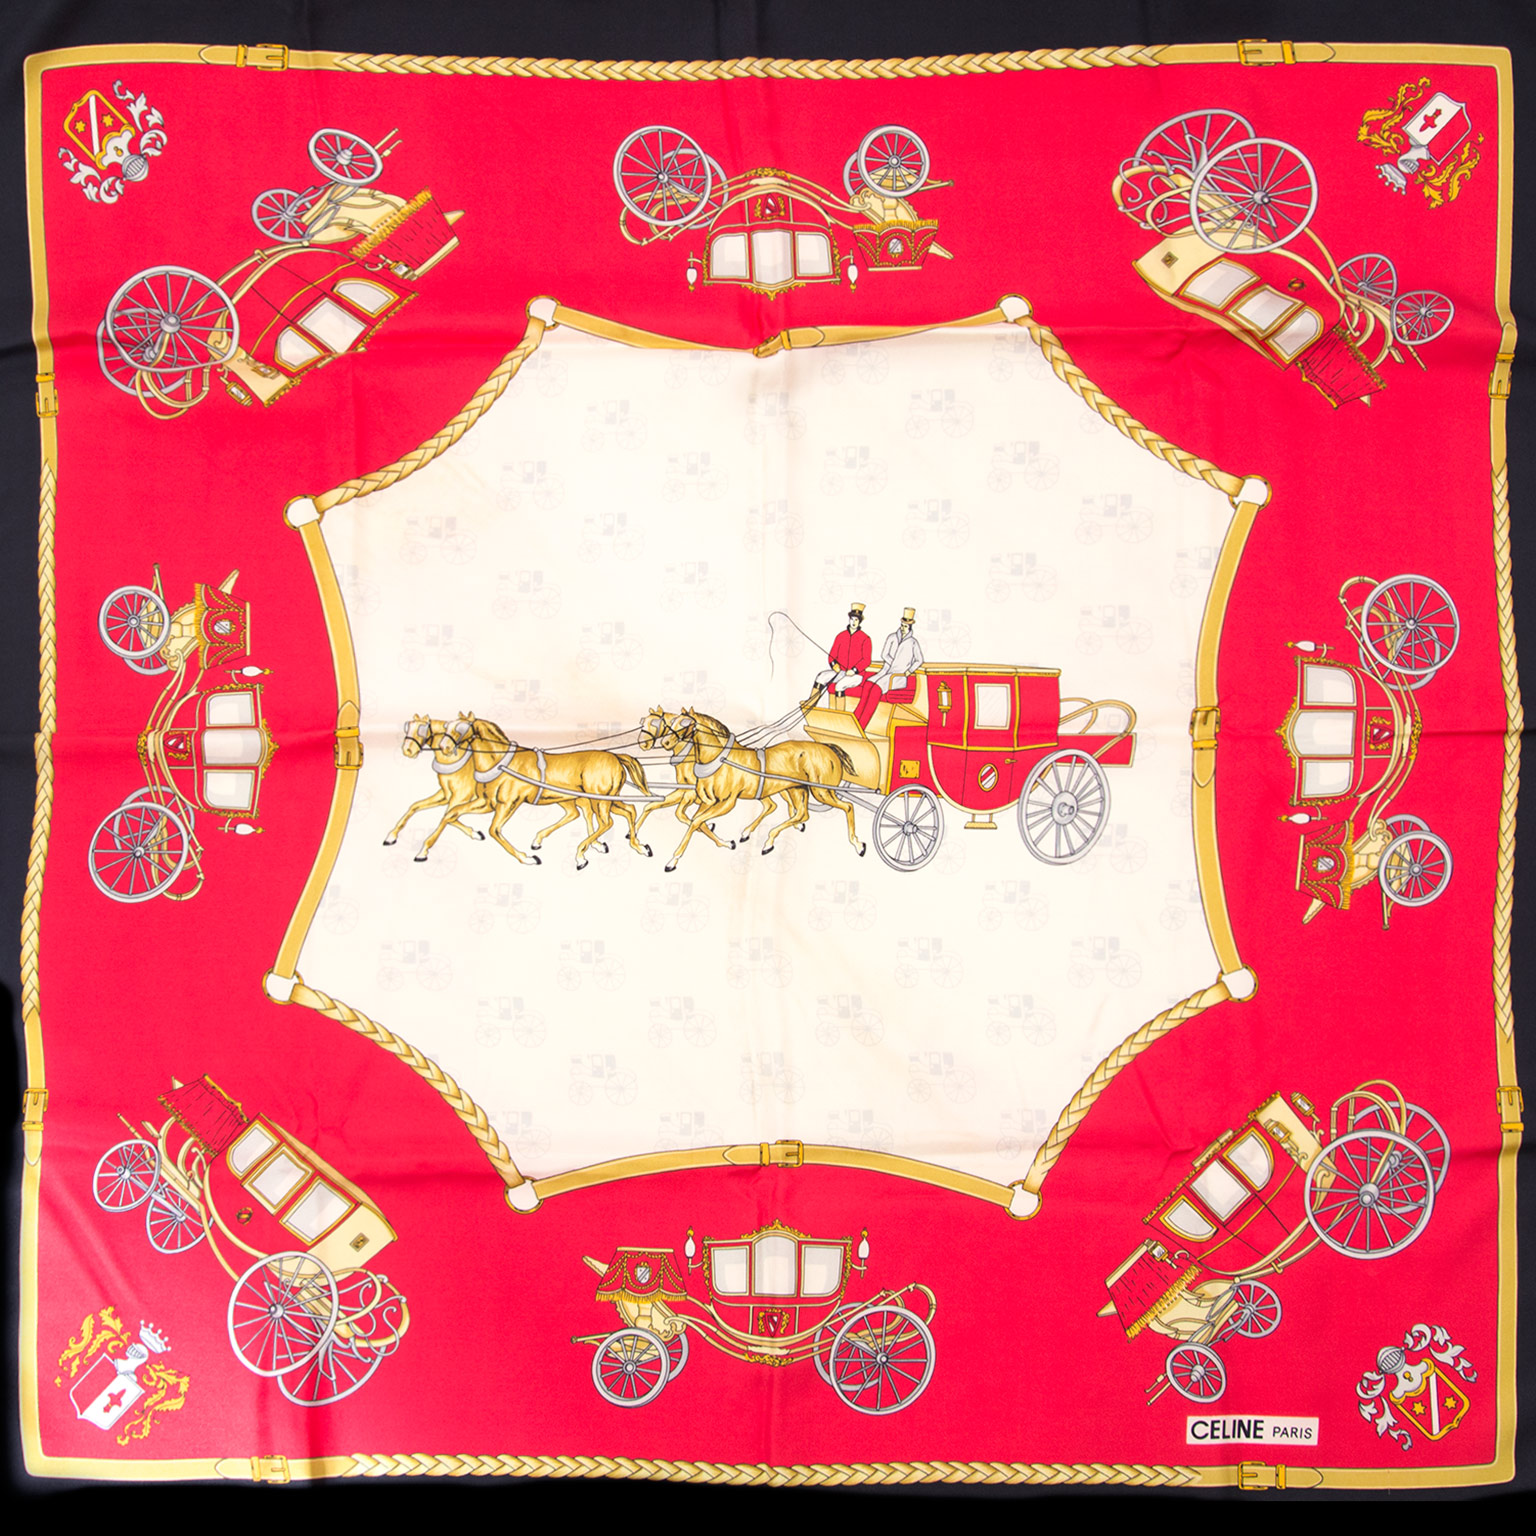 buy and sell your celine paris horse and carriage silk scarf now online at labellov.com